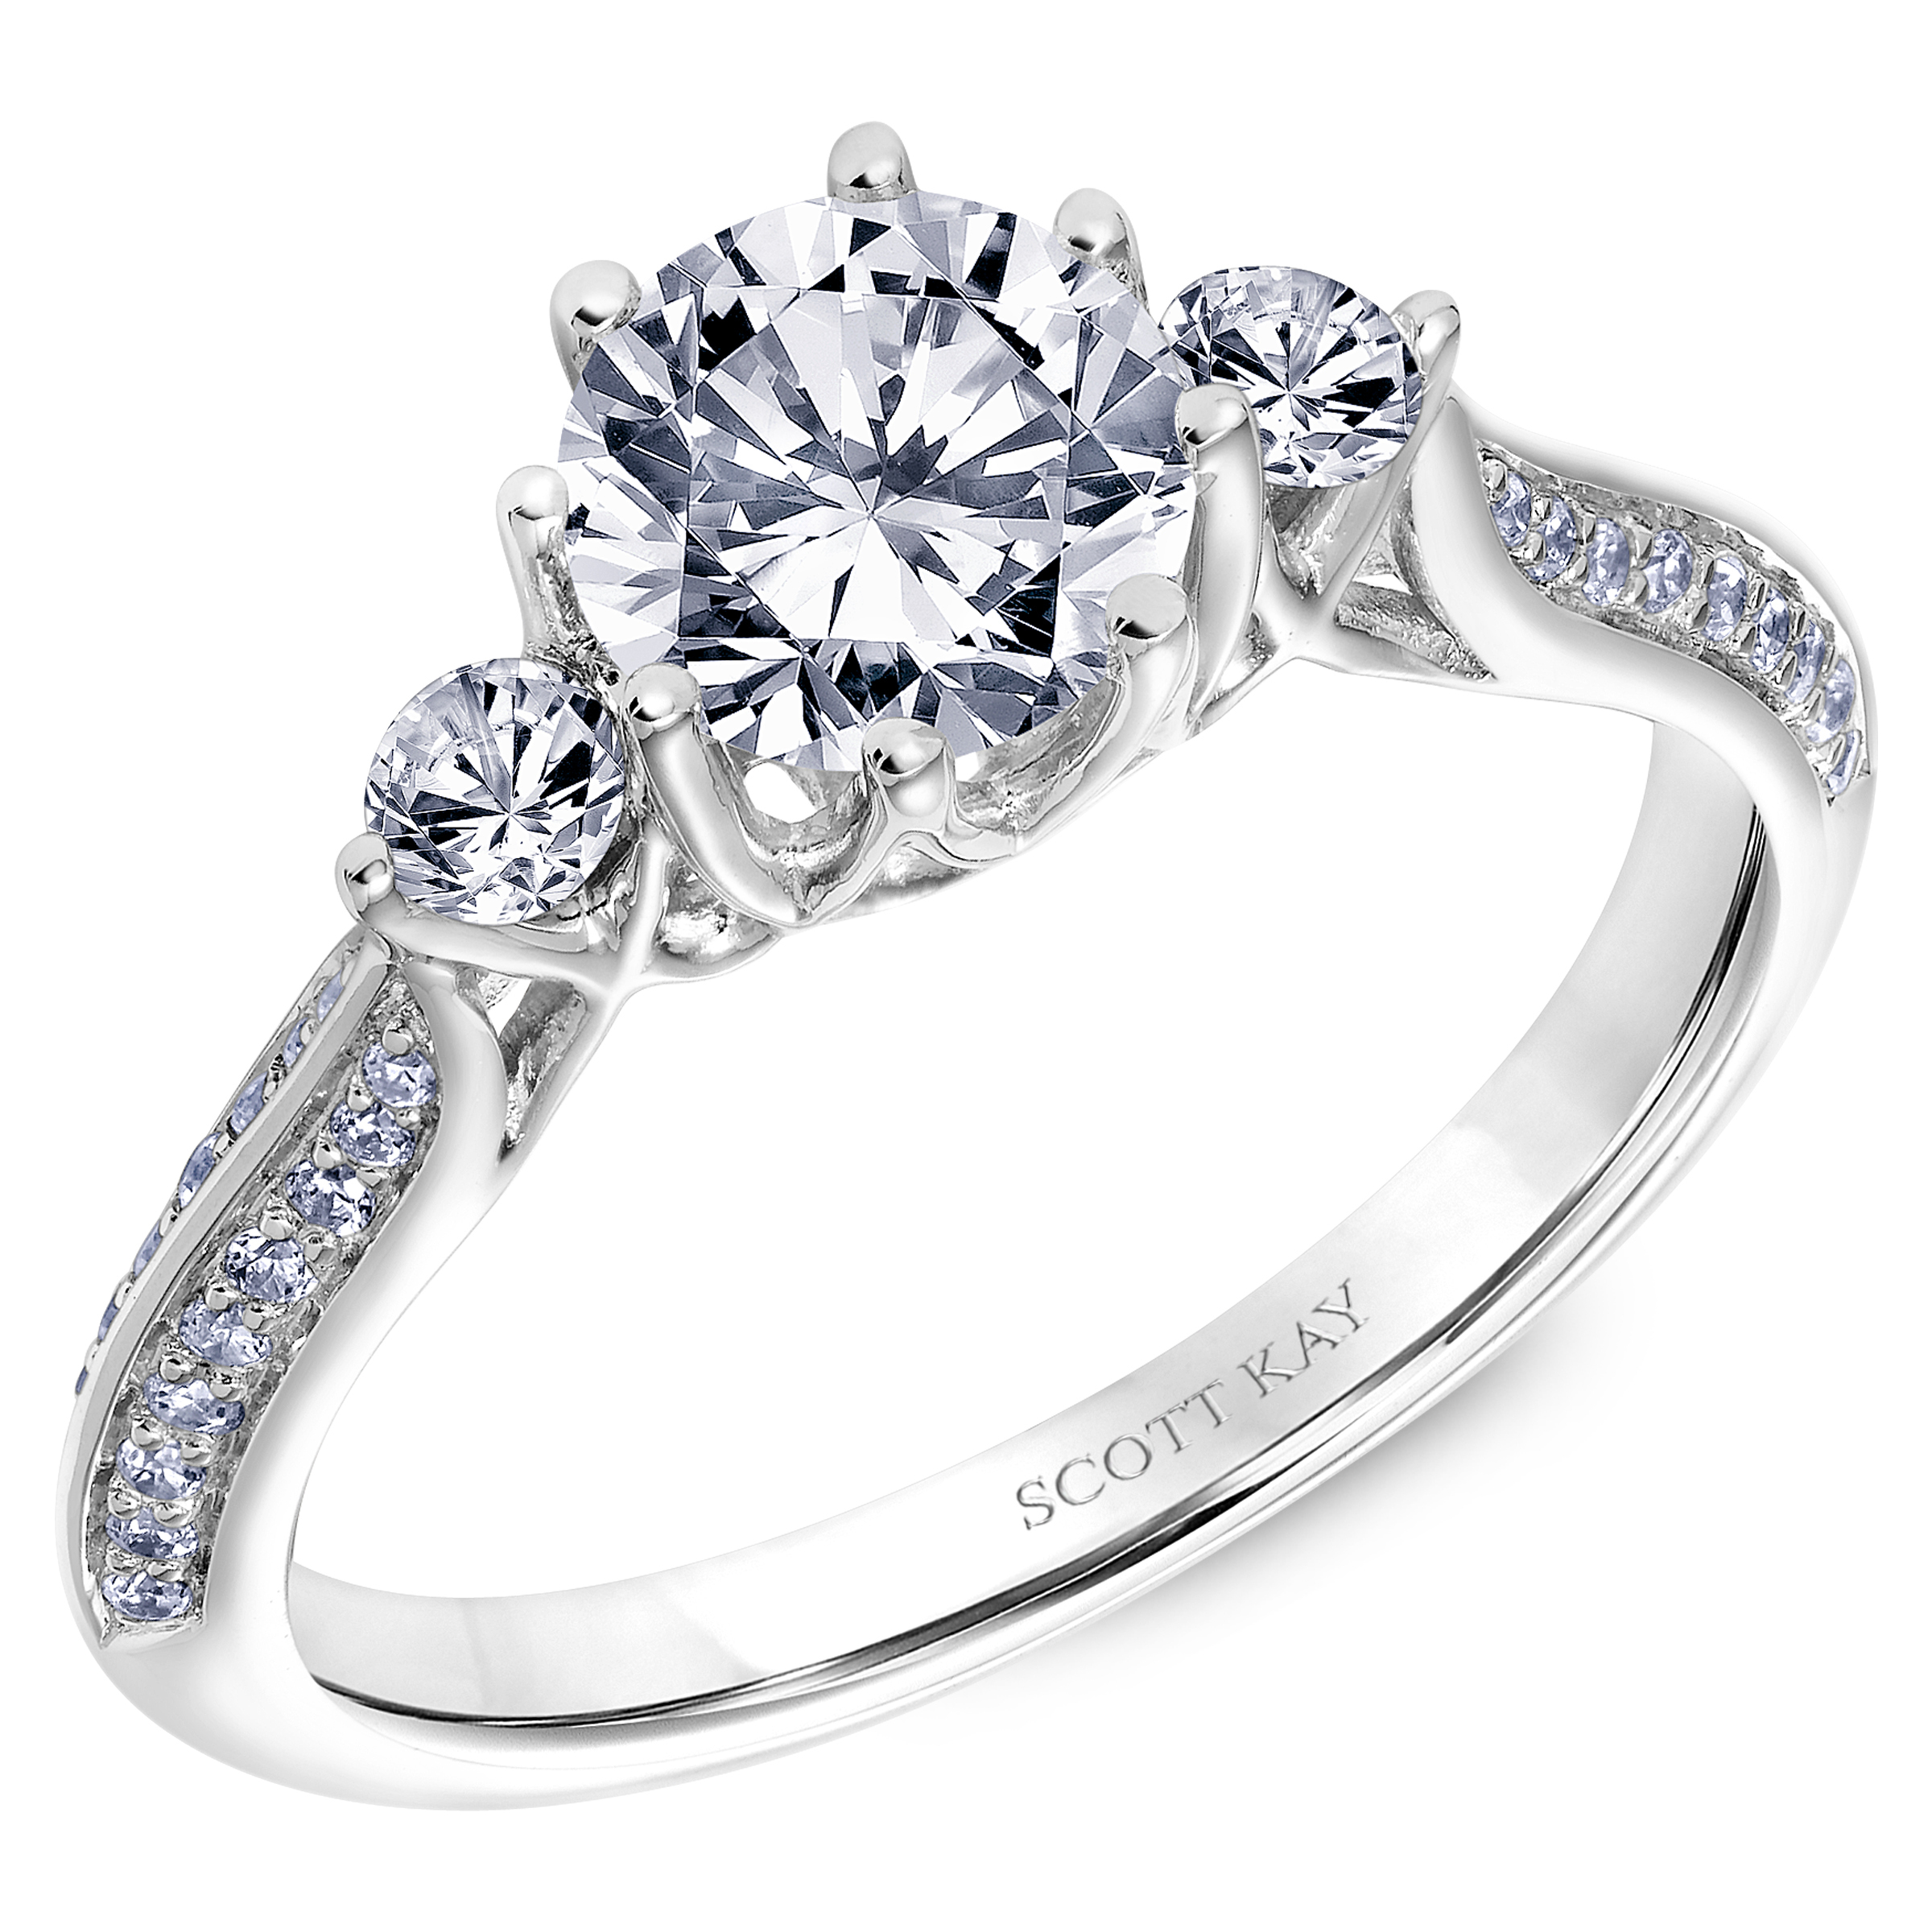 full rings petite tacori engagement fine scott crescent your bottom jewelry s destination koerber solid kay ring bridal diamond